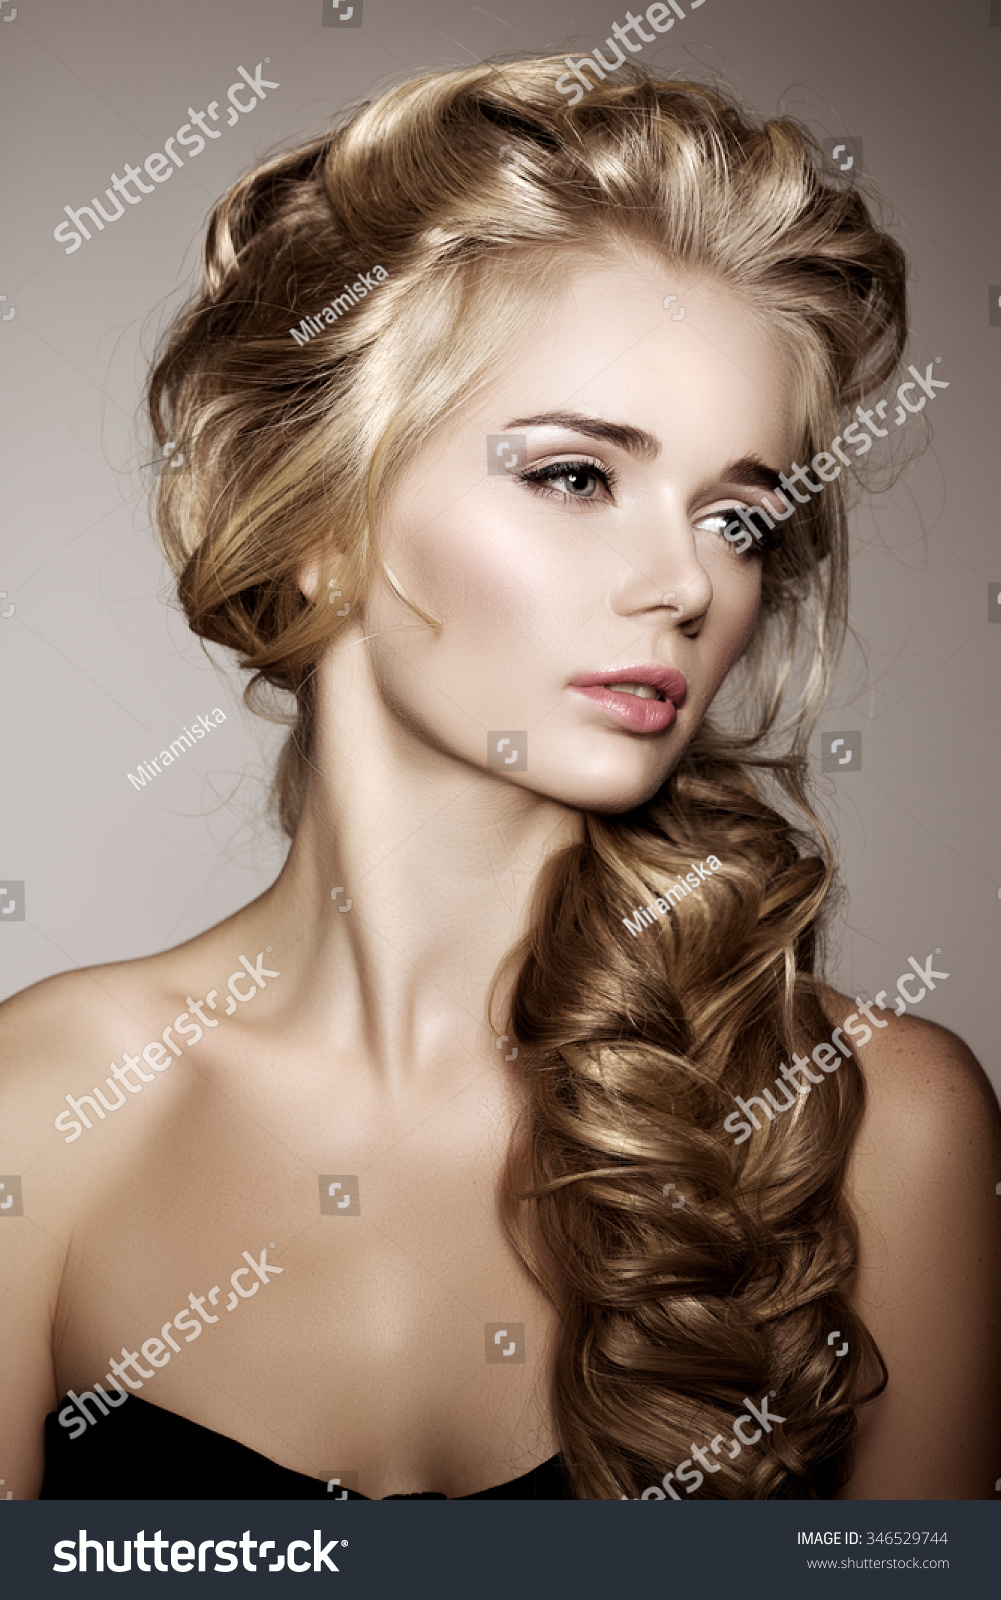 Model Long Braided Hair Waves Curls Stock Photo Edit Now 346529744